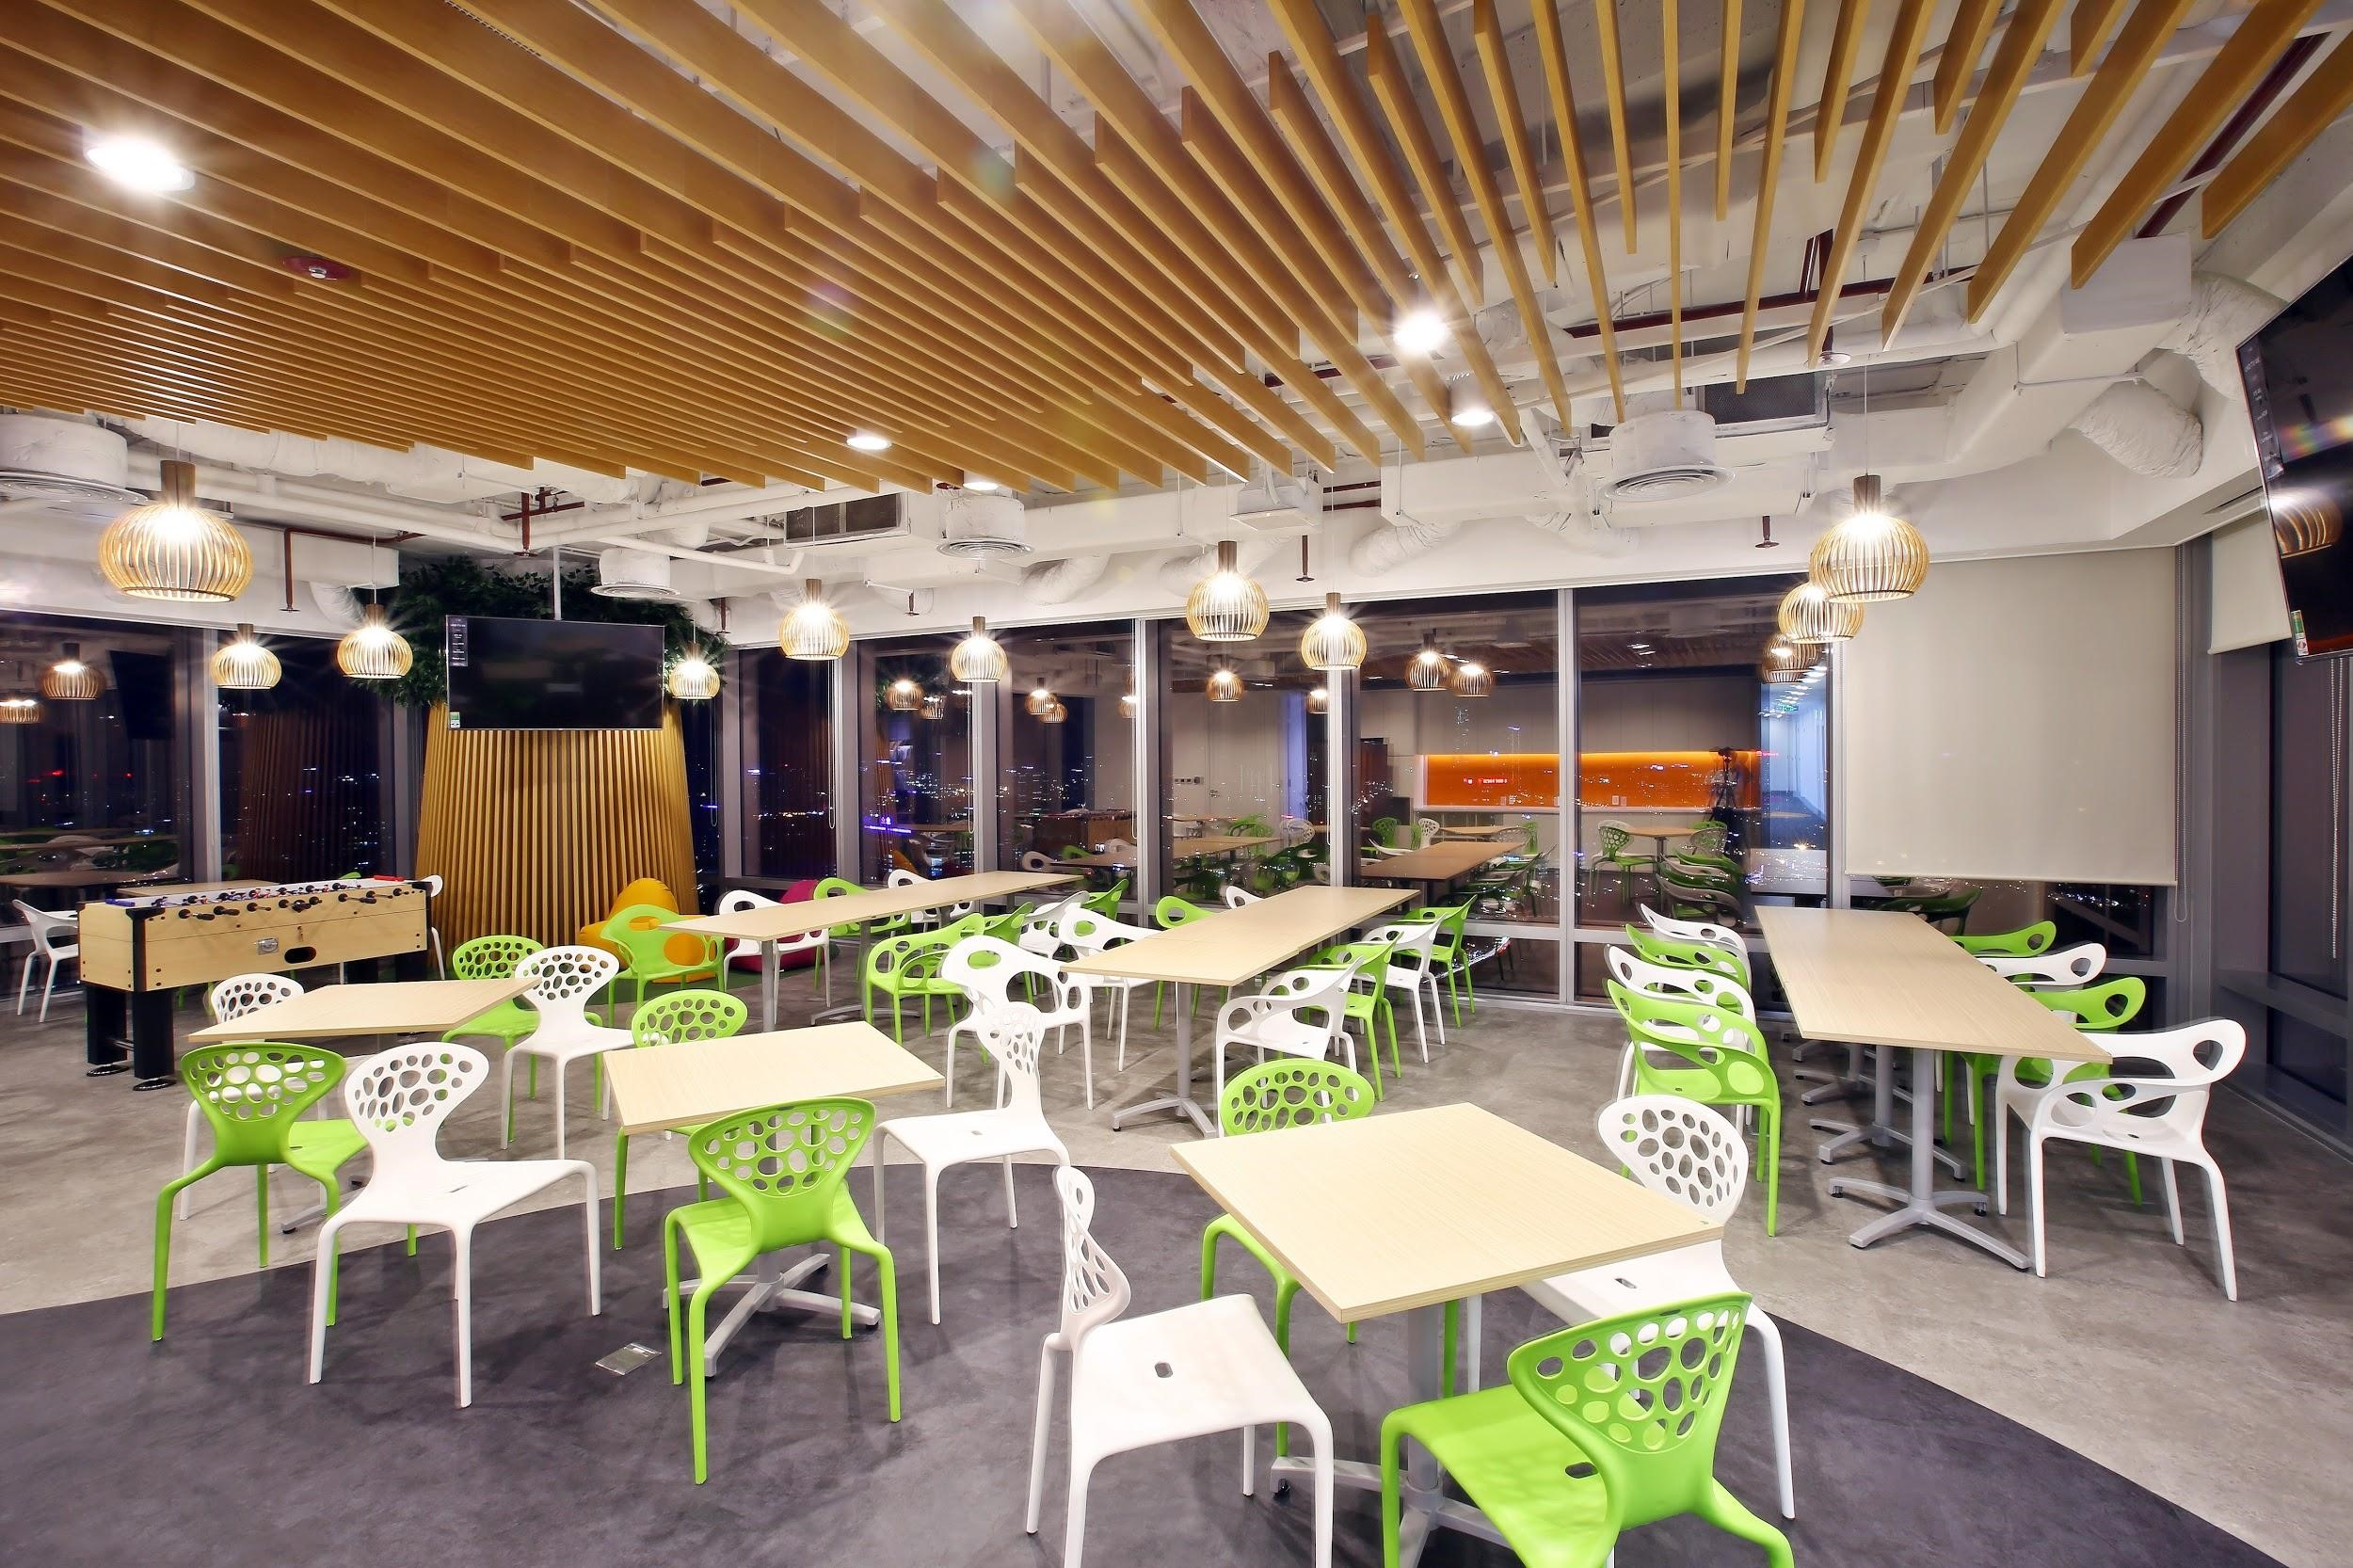 An open dining room in pair with table top football for employees to relax and entertain